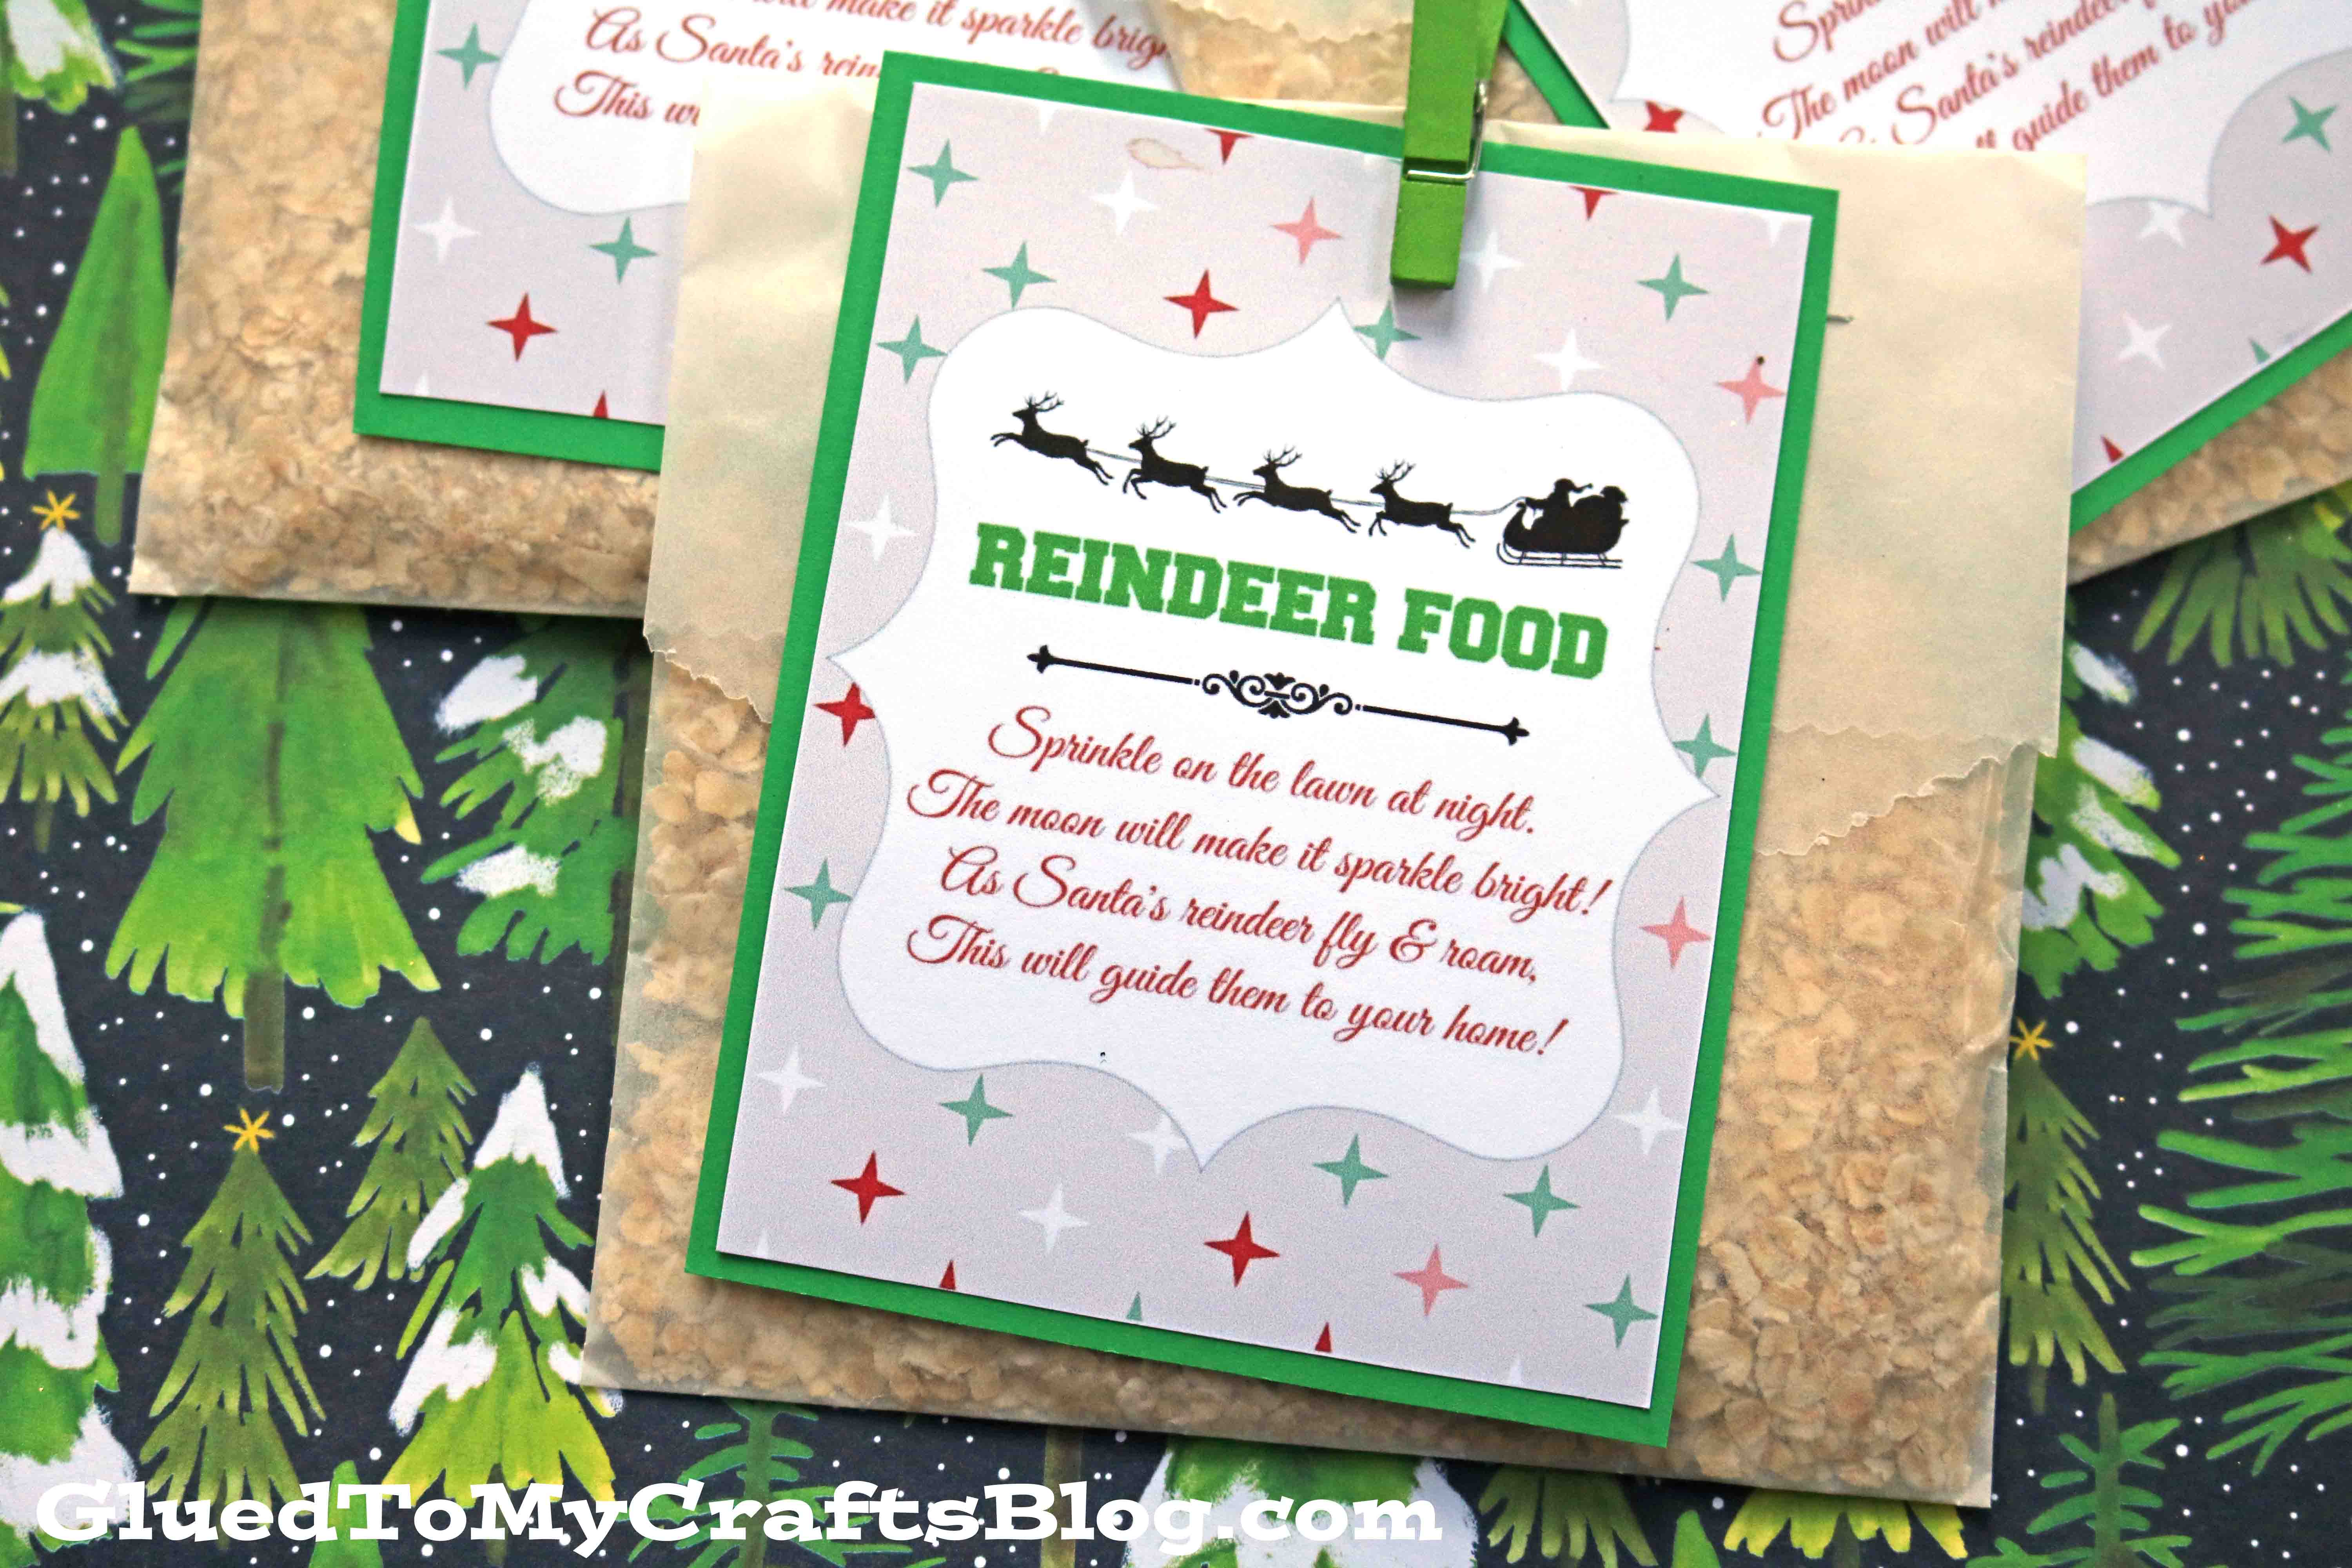 photograph about Printable Reindeer Food Tags referred to as Reindeer Foods Recipe Printable